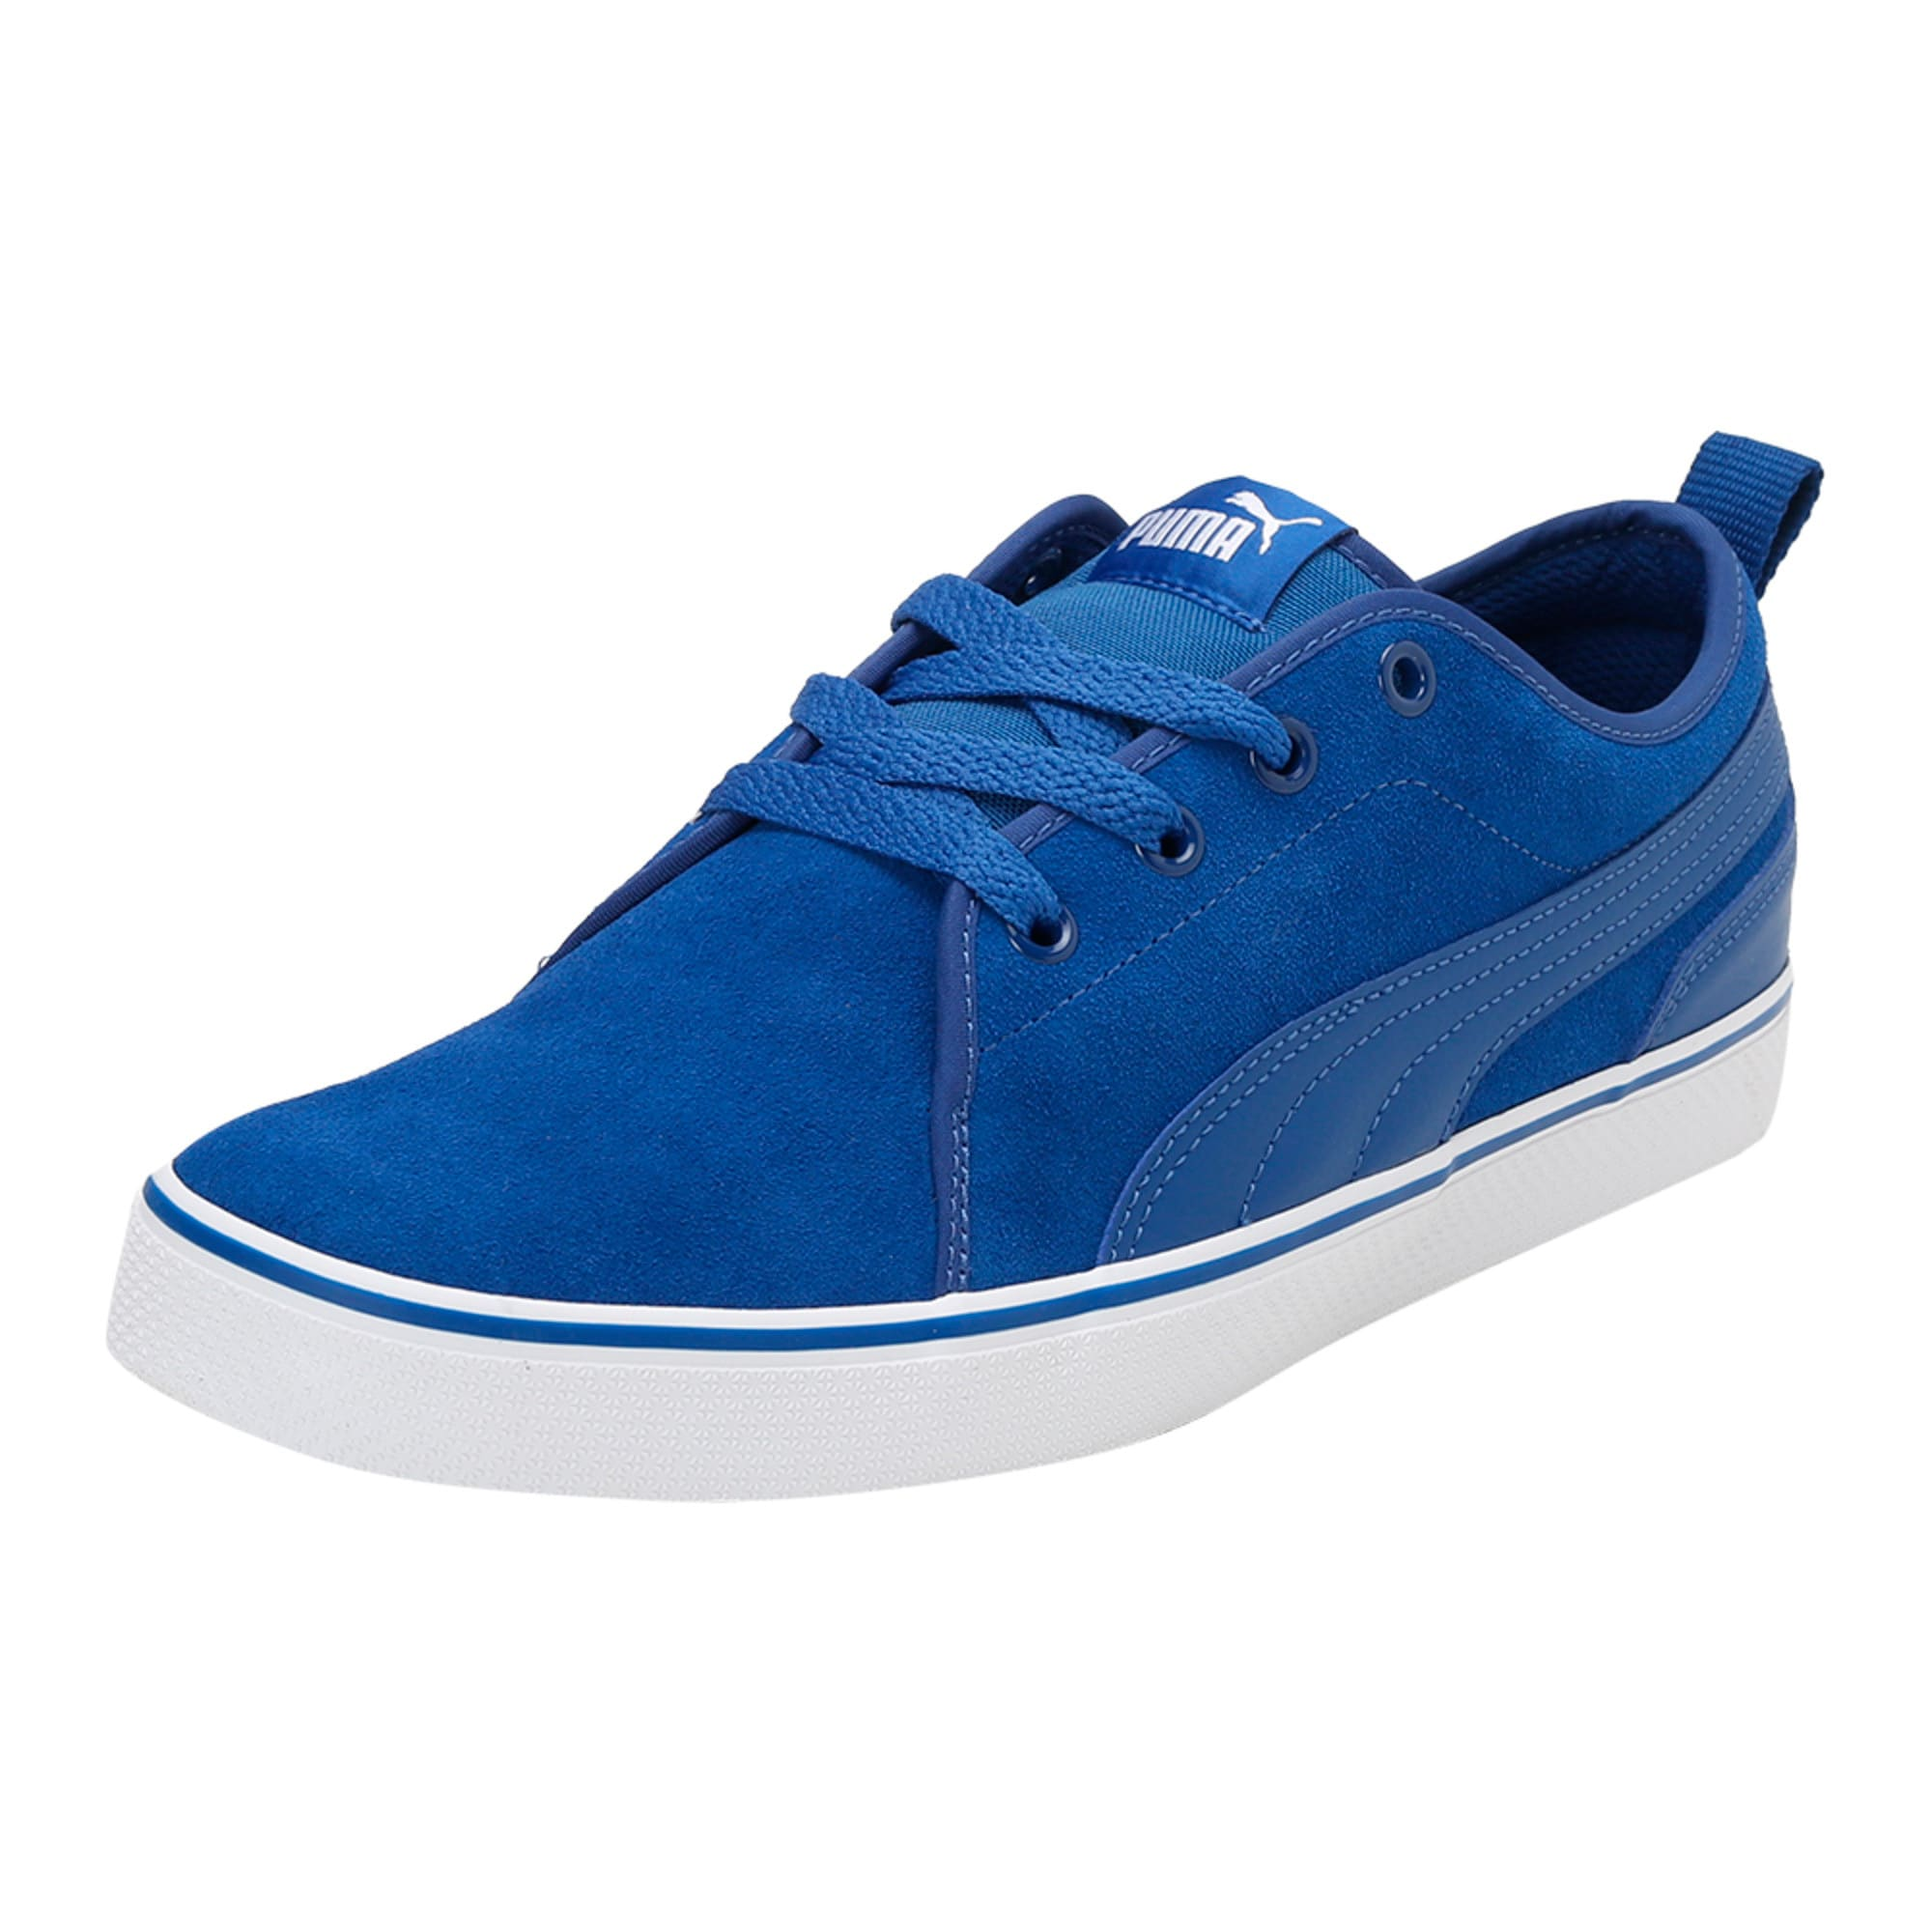 Thumbnail 1 of S Street Vulc, TRUE BLUE-TRUE BLUE, medium-IND